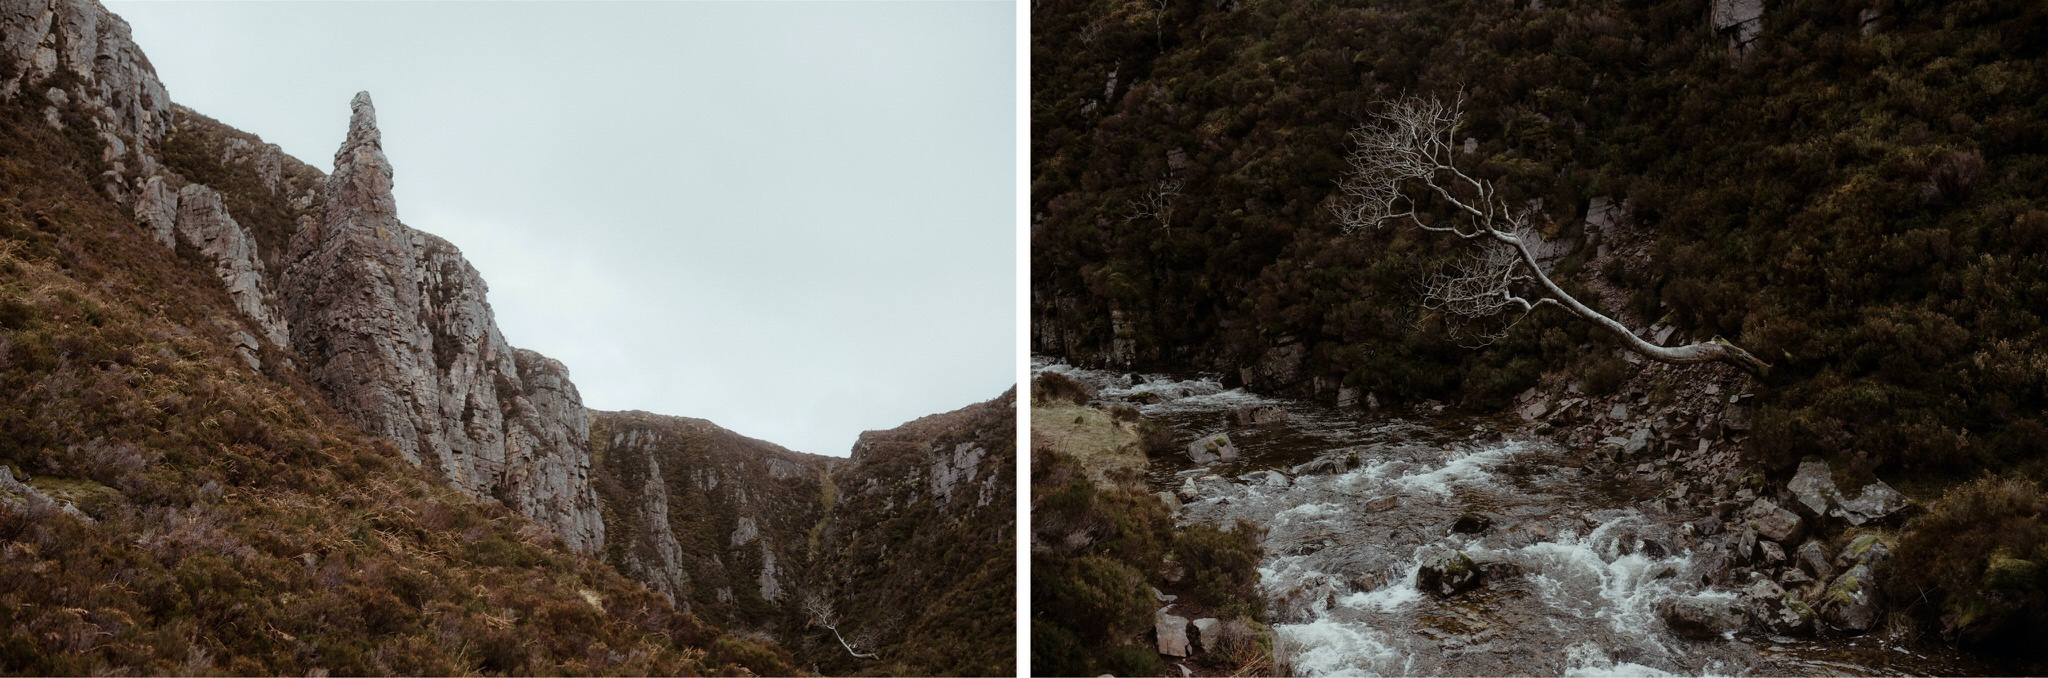 Detail shots of a river in Assynt, Scotland